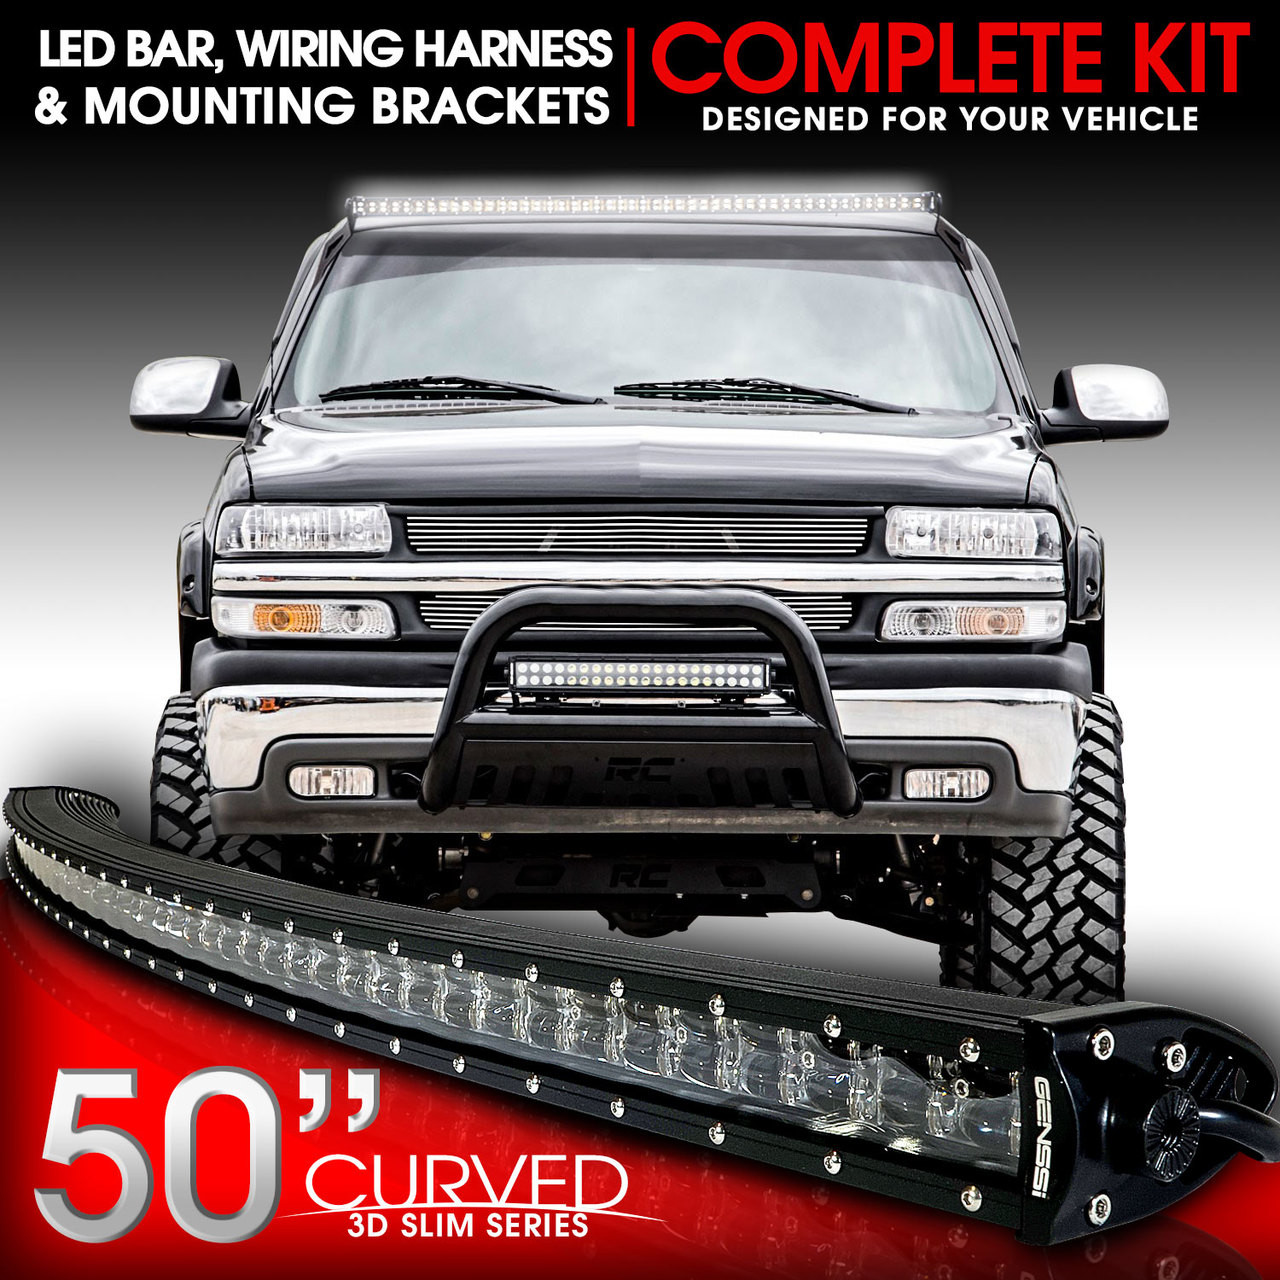 2006 Silverado Light Wiring Harness Diagram Schematics Led Bar Curved 288w 50 Inches Bracket Kit For Mustang